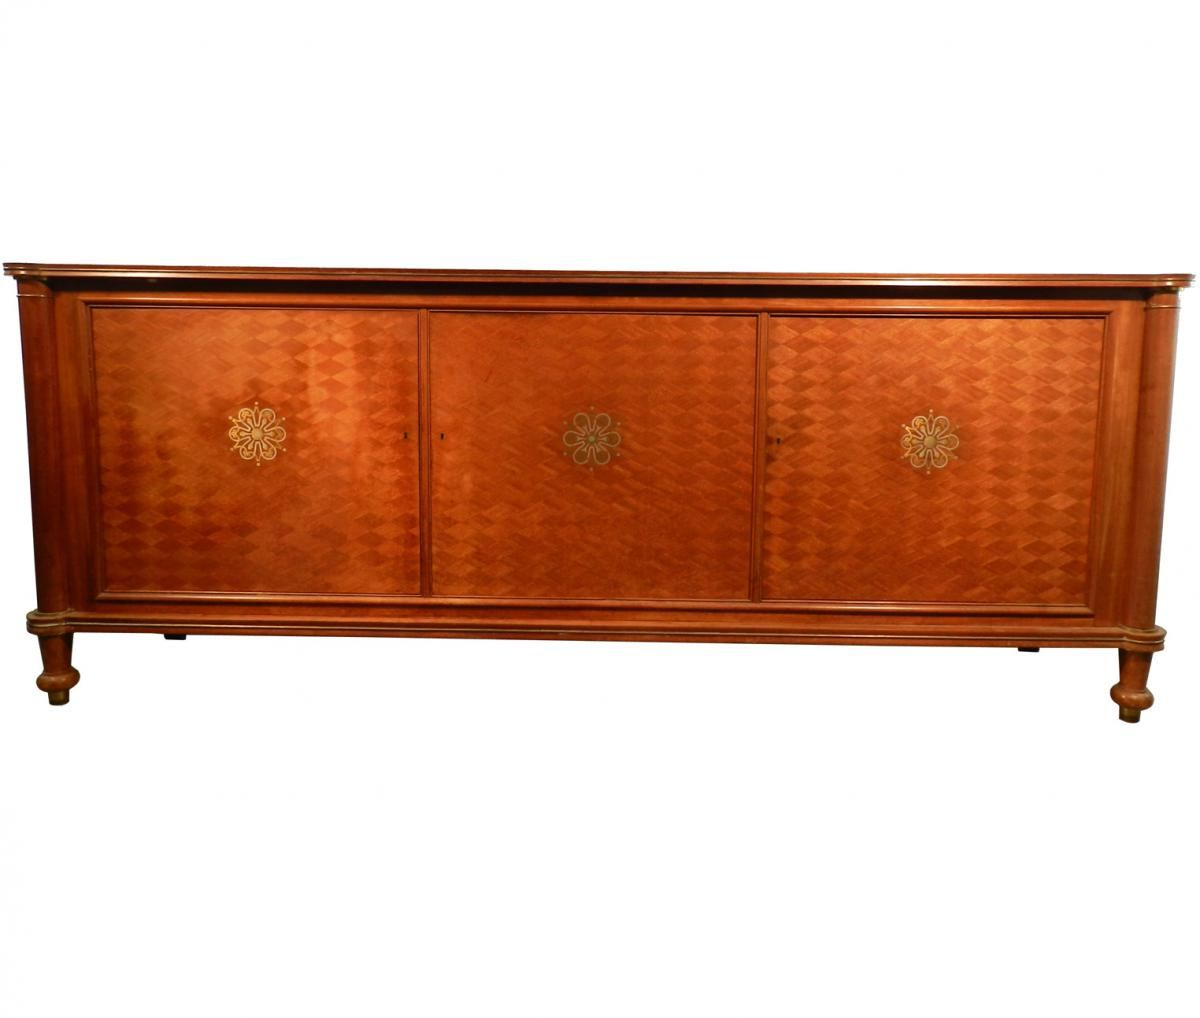 vintage sideboard by jules leleu for sale at pamono. Black Bedroom Furniture Sets. Home Design Ideas